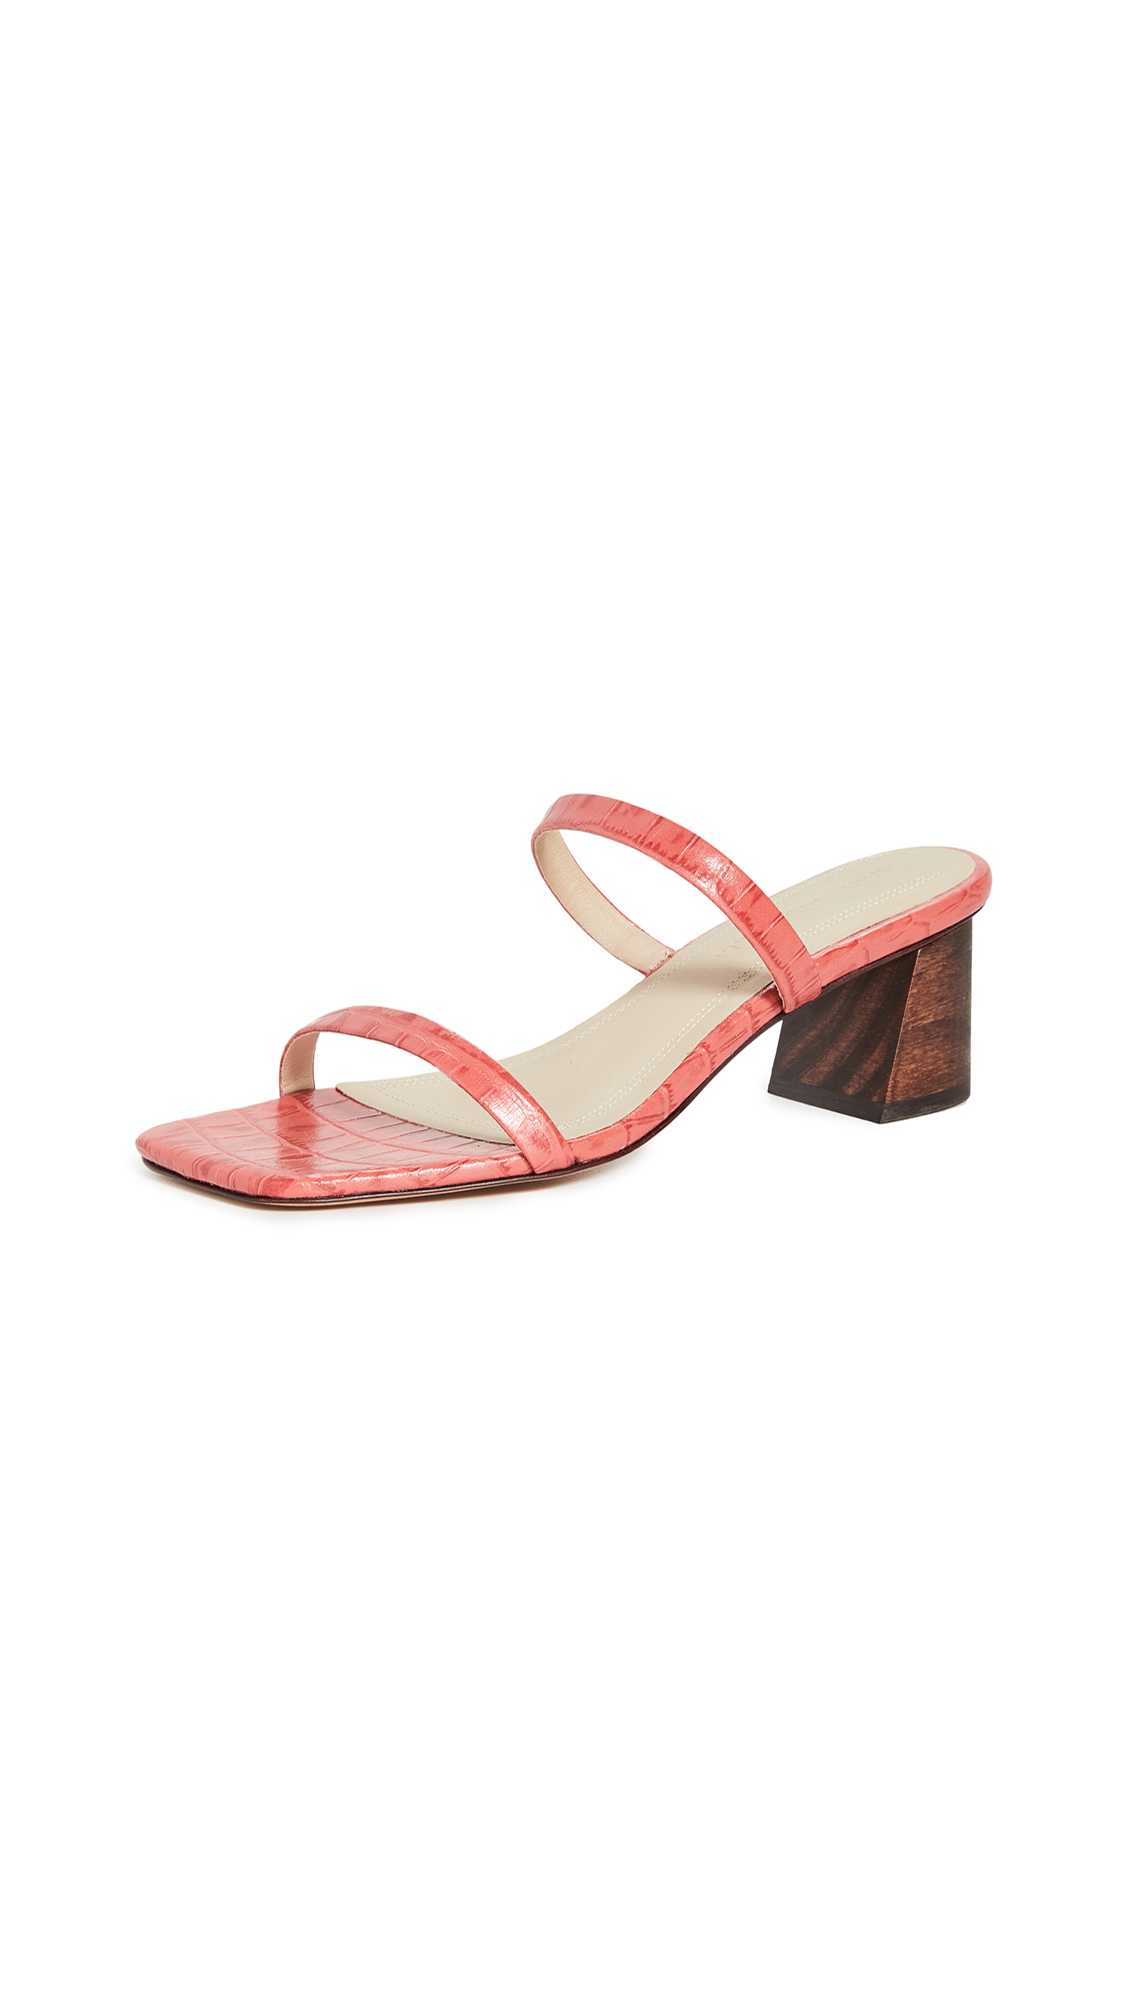 Mari Giudicelli May Sandals - 60% Off Sale